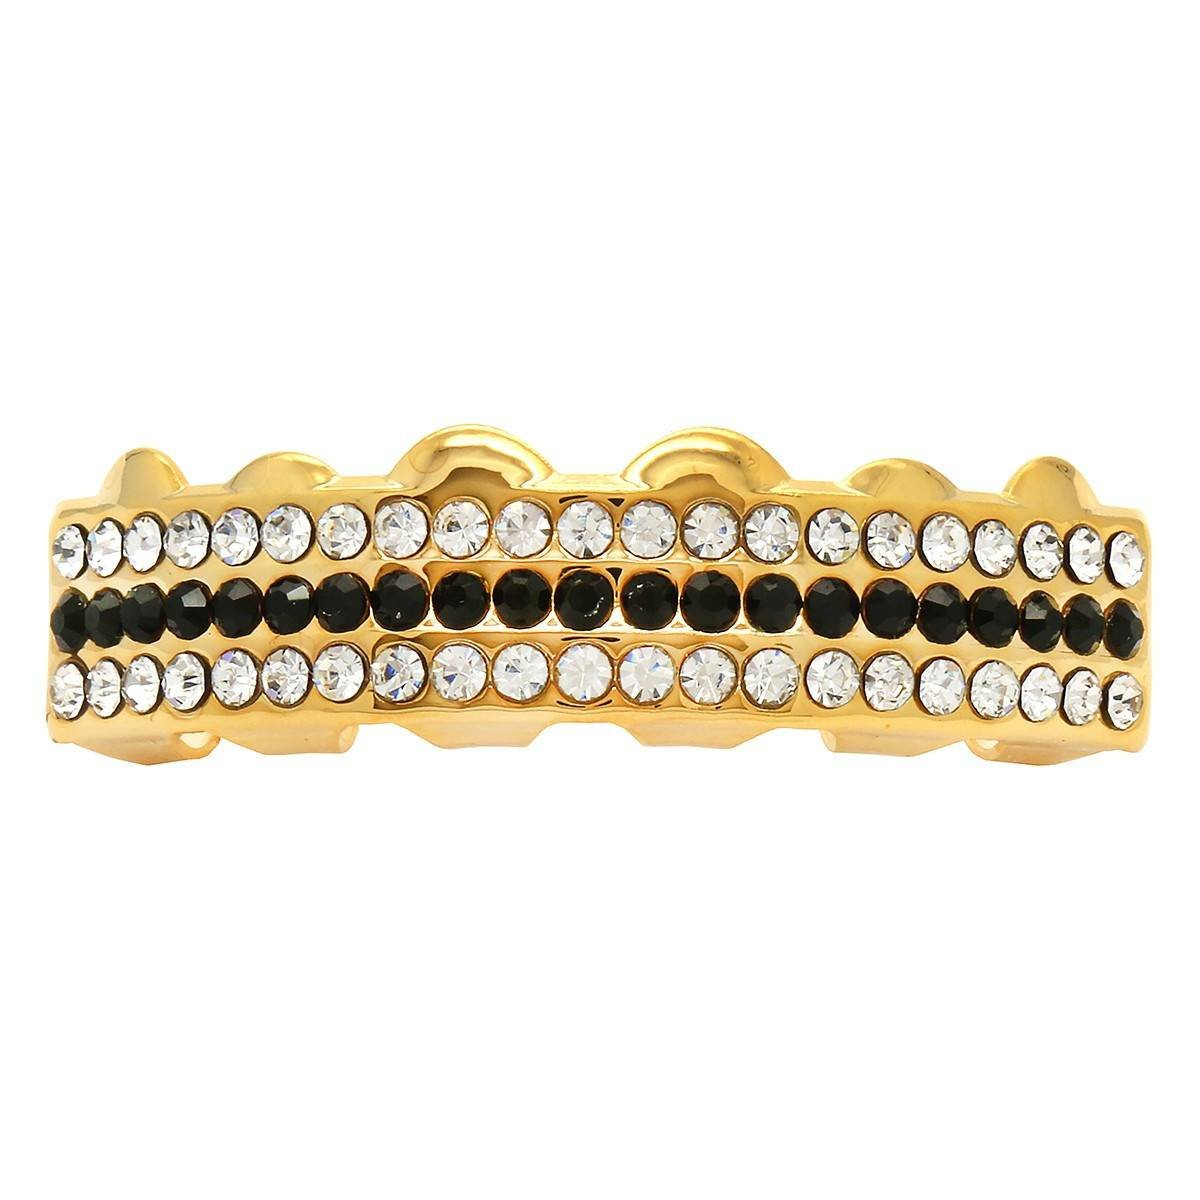 GRILLZ SET GOLD 3 ROW CLEAR BLACK